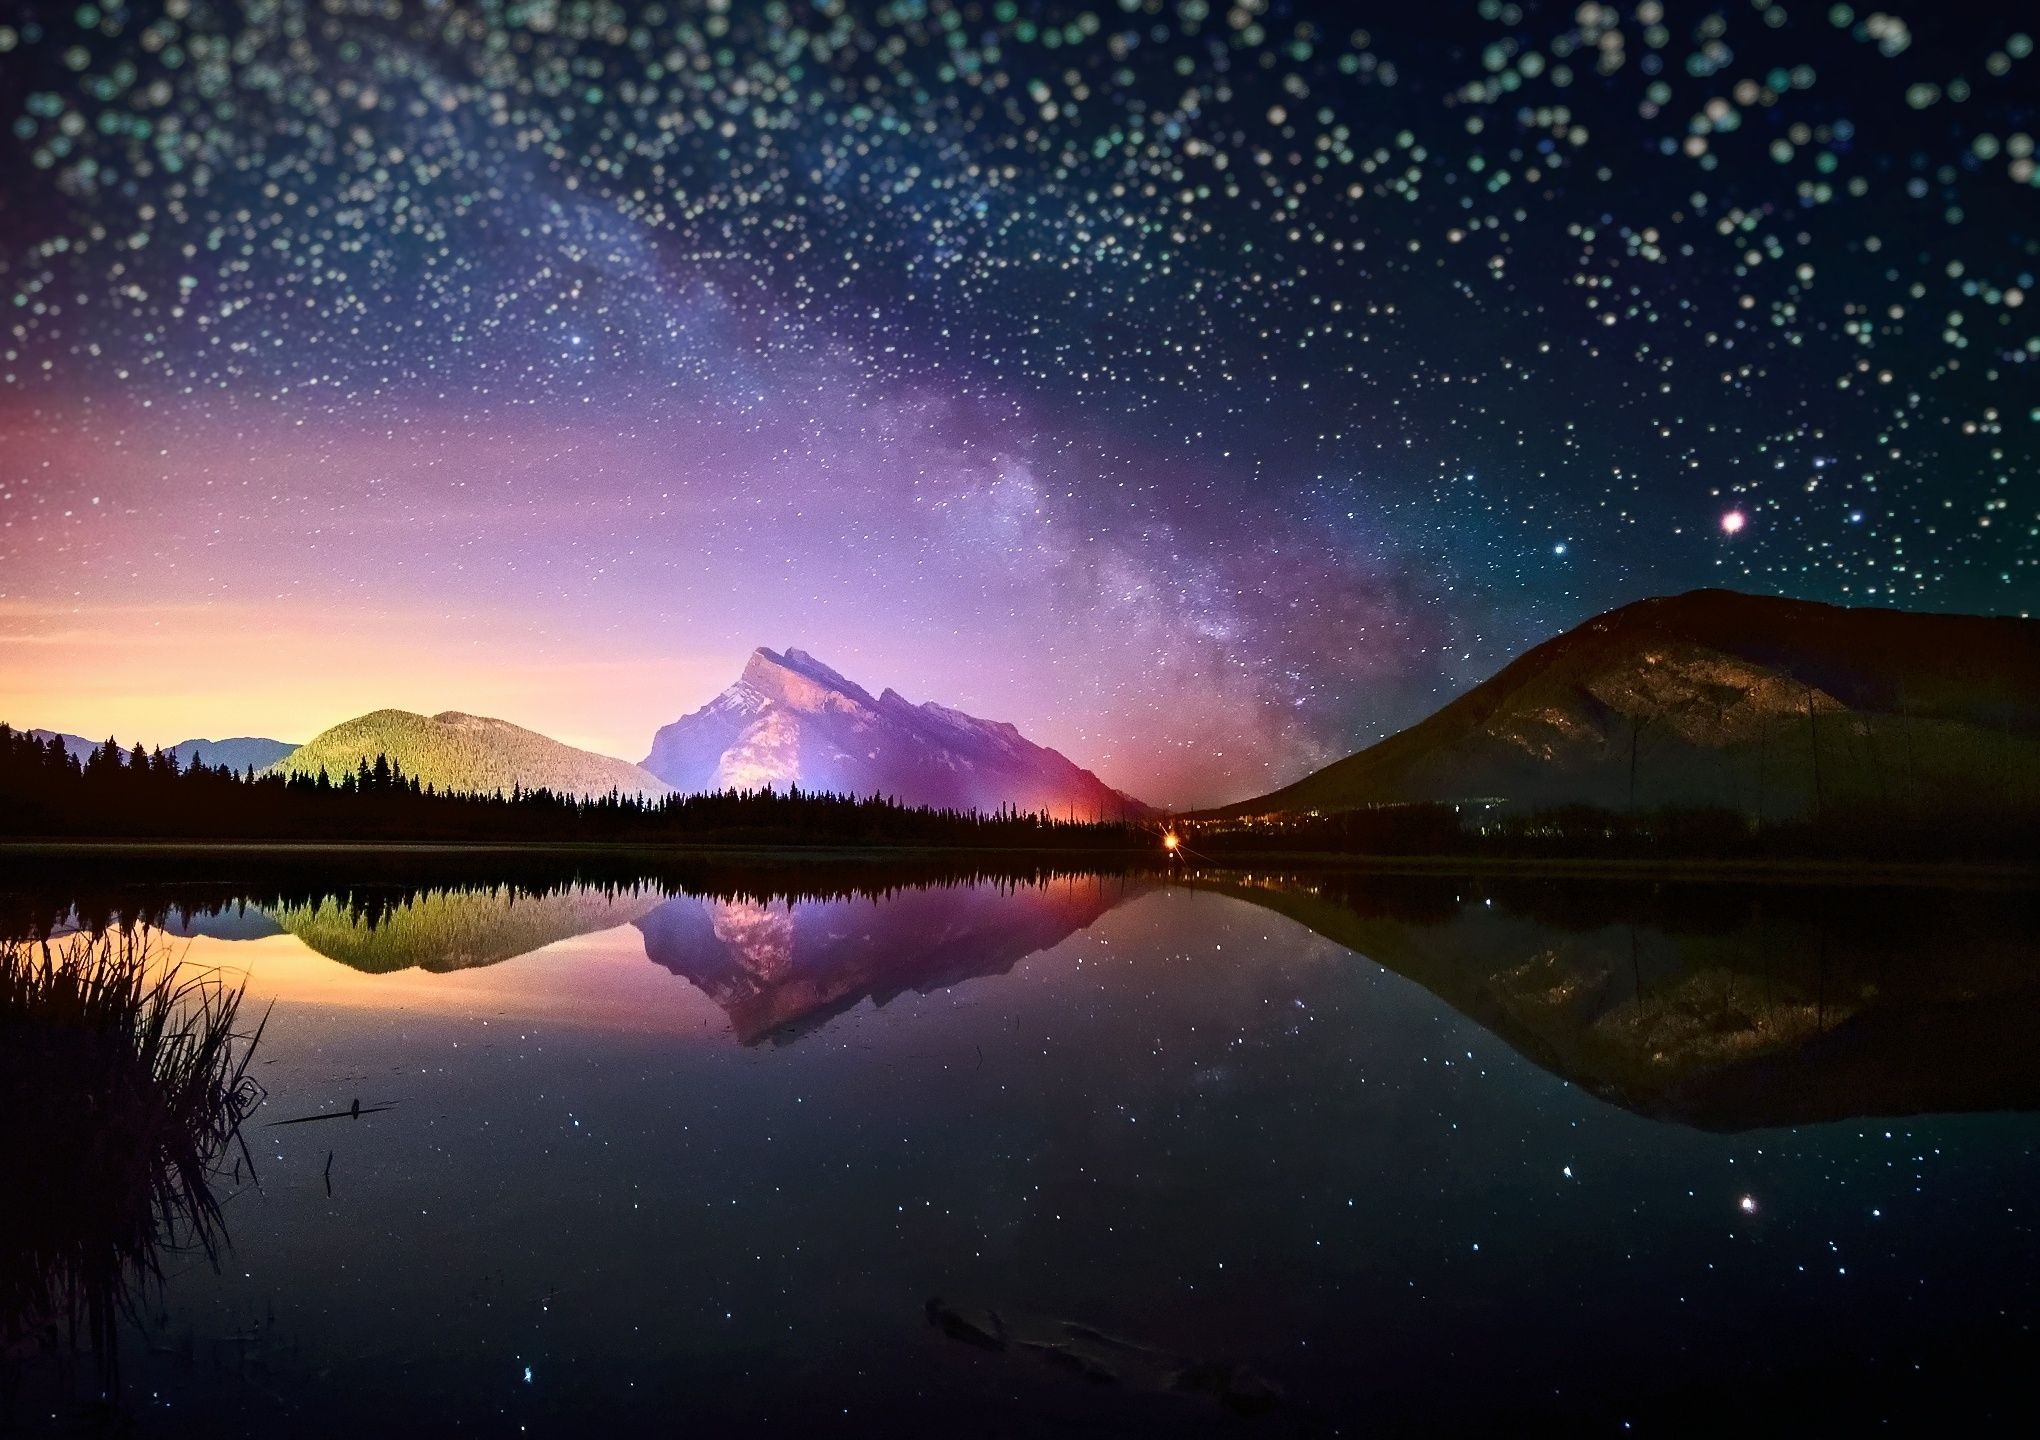 10 Best Starry Night Sky Wallpaper Hd FULL HD 1920×1080